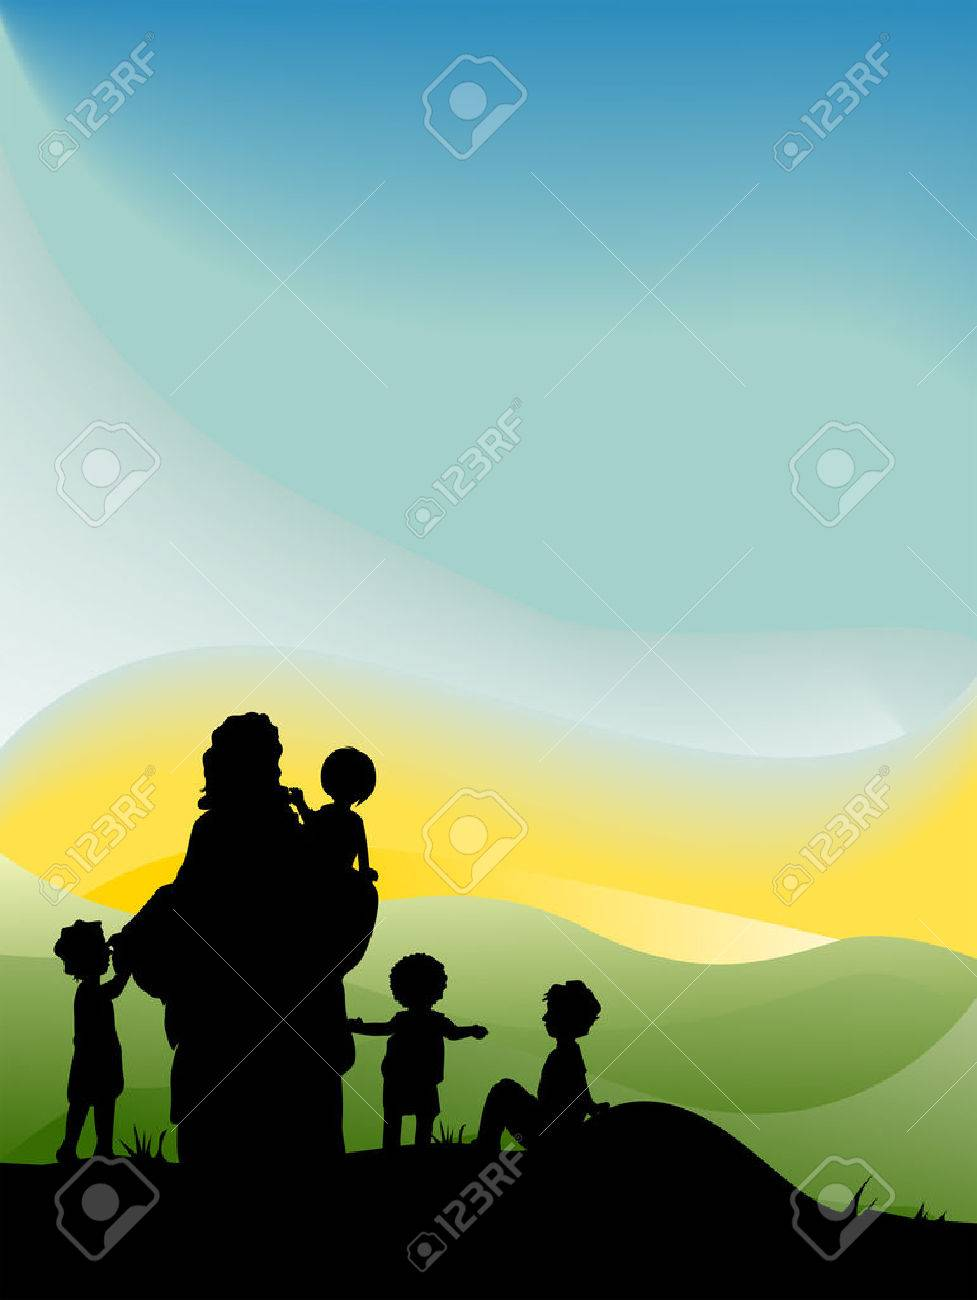 jesus with children silhouette series royalty free cliparts